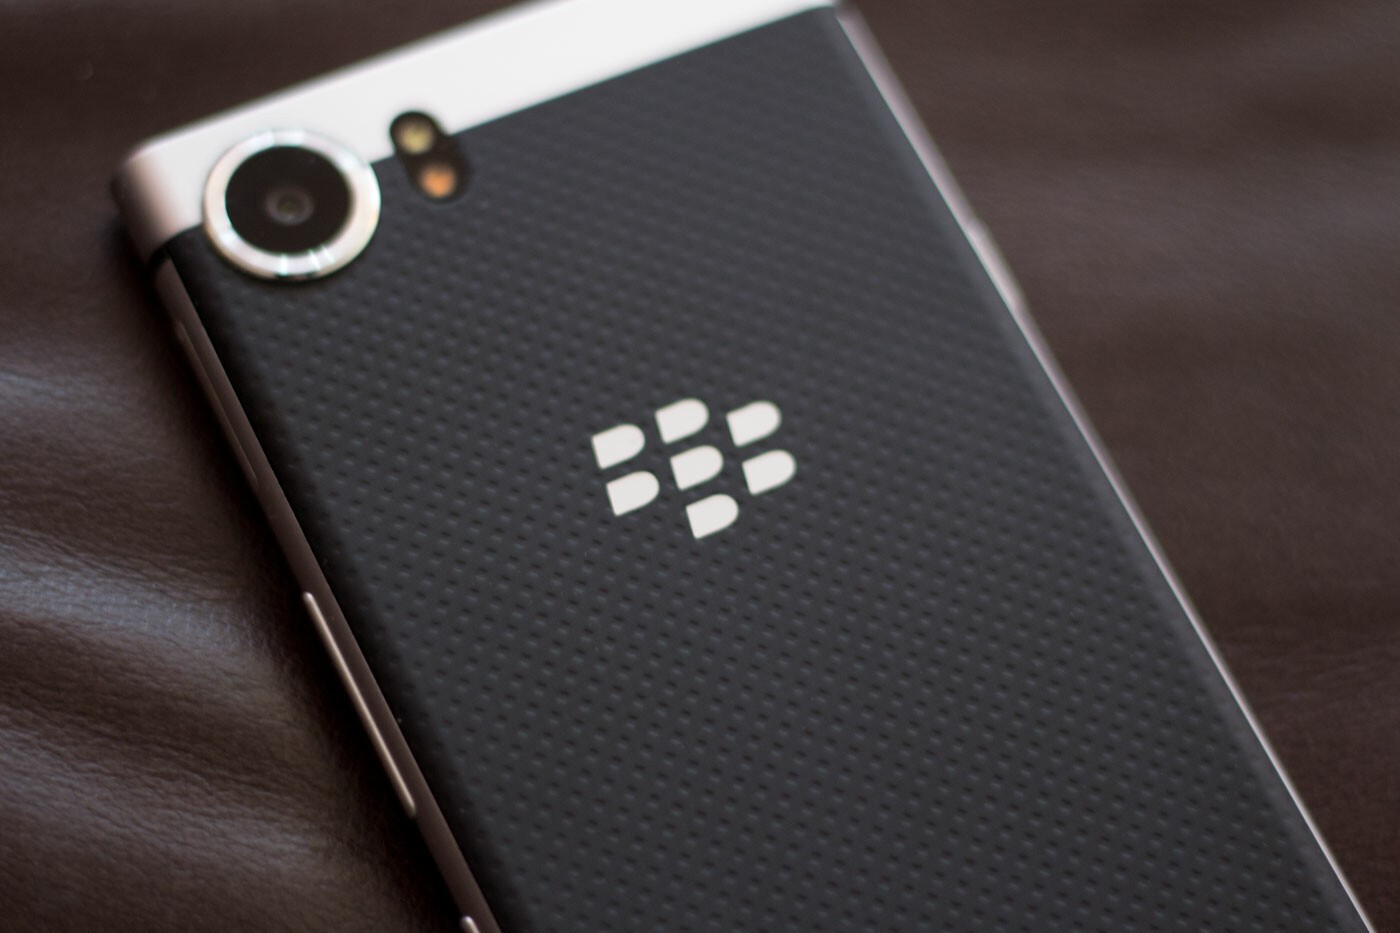 Turn the BlackBerry KEYone on or off